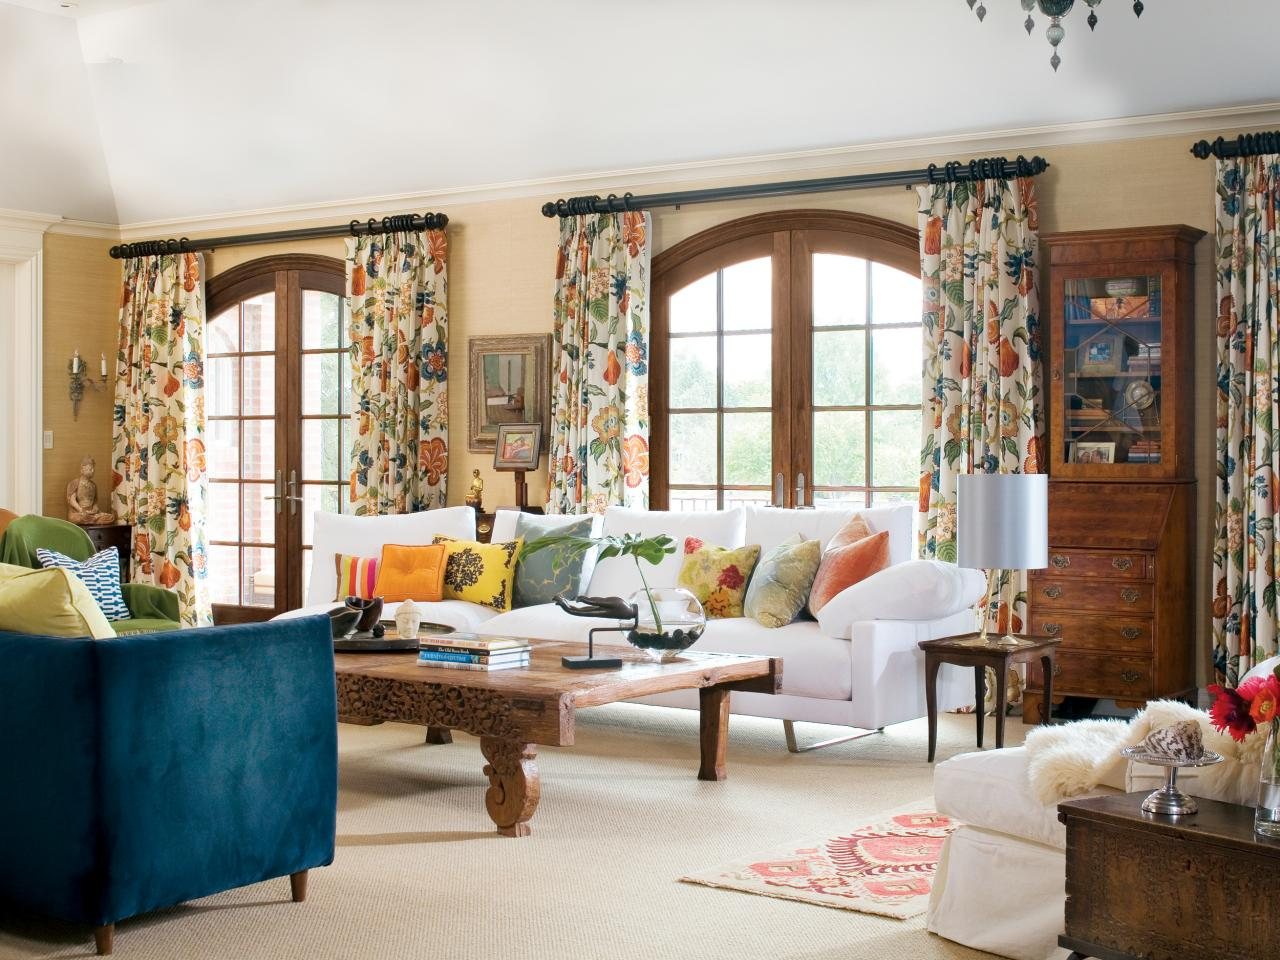 sears-living-room-curtains-sale-and-living-room-curtains-target-on-living-room-curtains